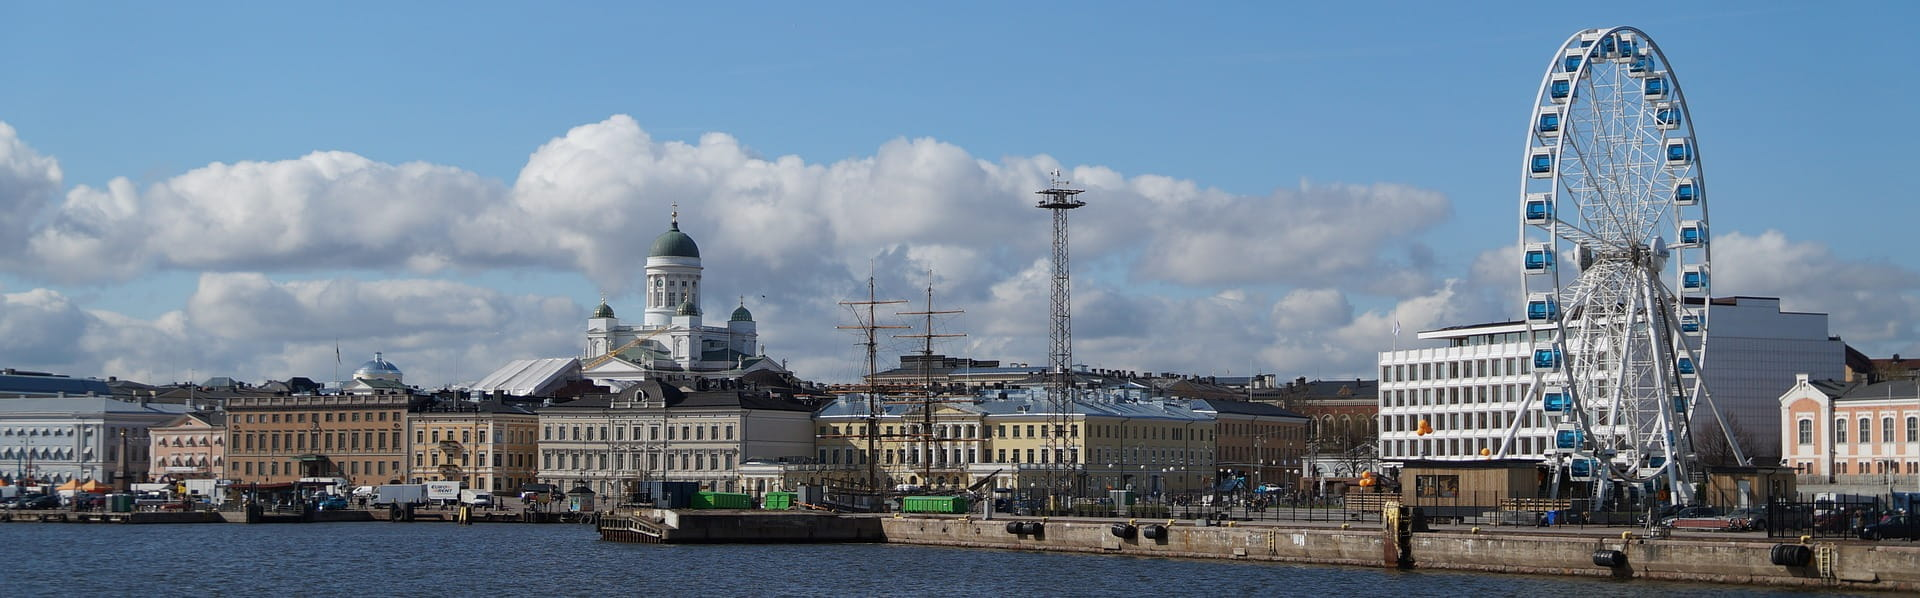 A panorama of the waterfront in Helsinki, Finland.